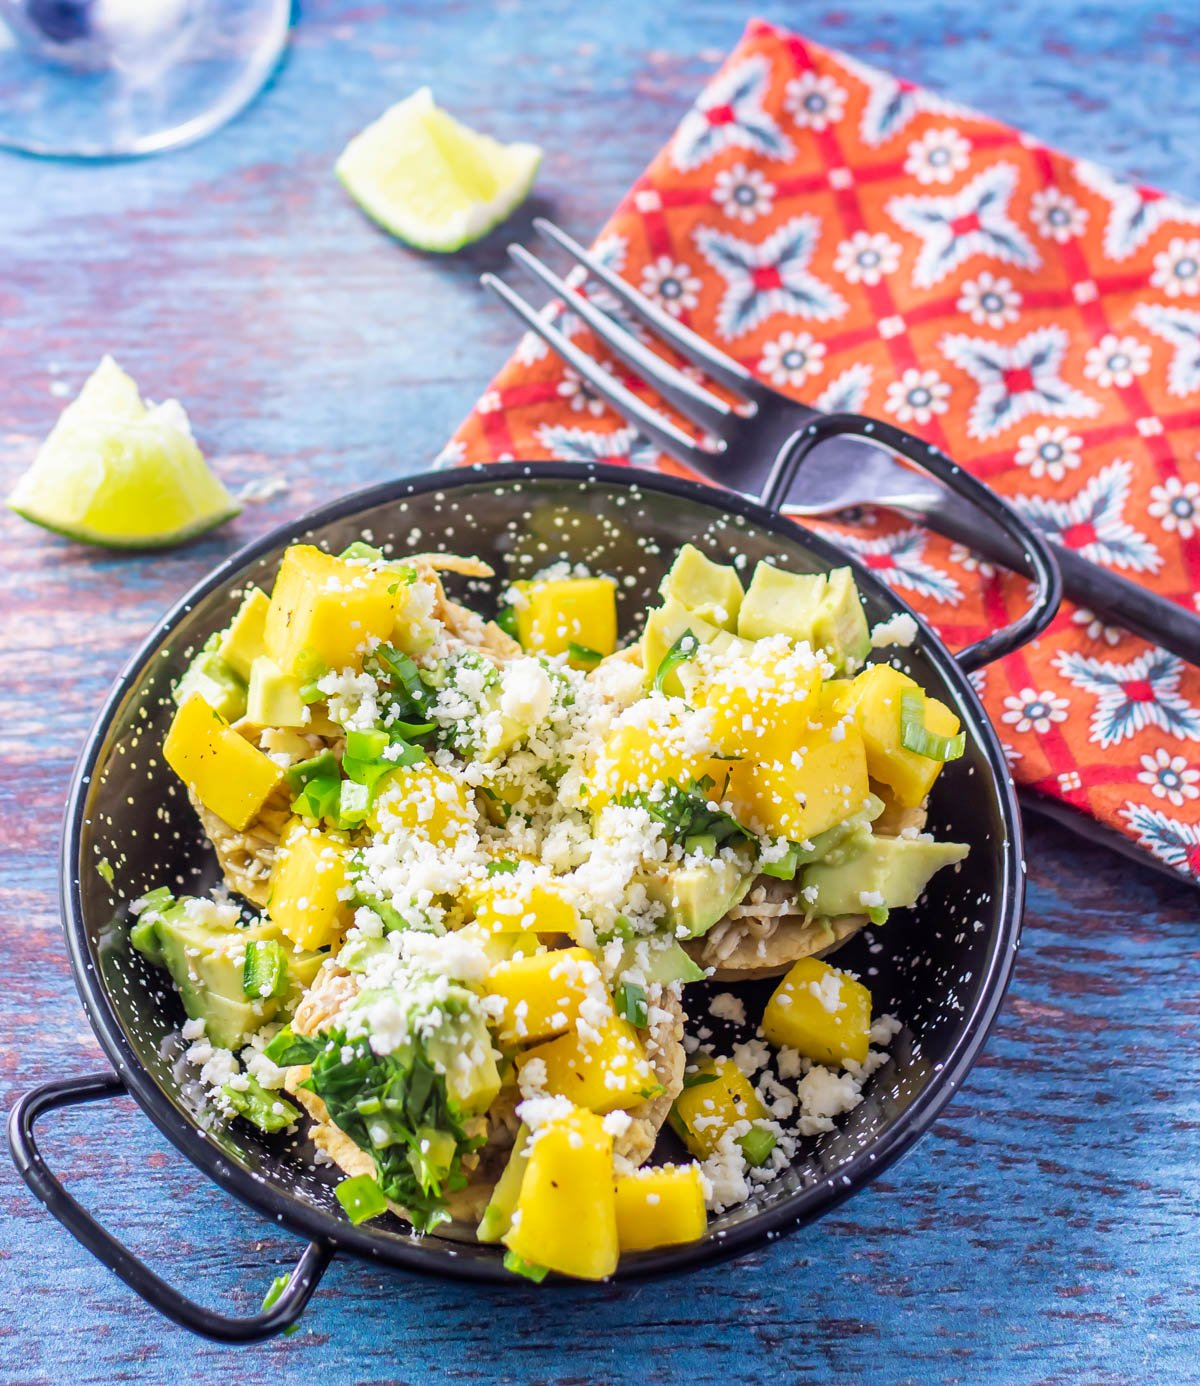 A mini paella pan with 3 sopas de pollo topped with mango salsa, avocado, and crumbled cotija, a print napkin and black fork.